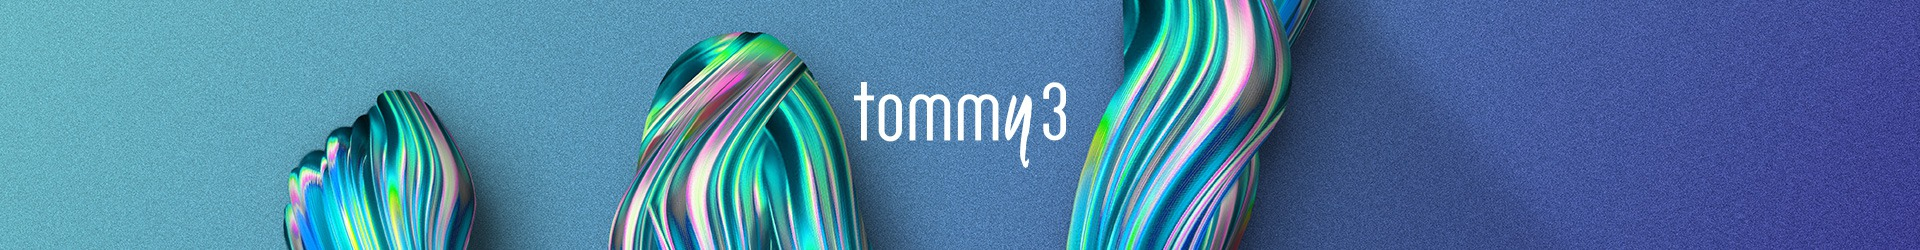 Smartphone Tommy3